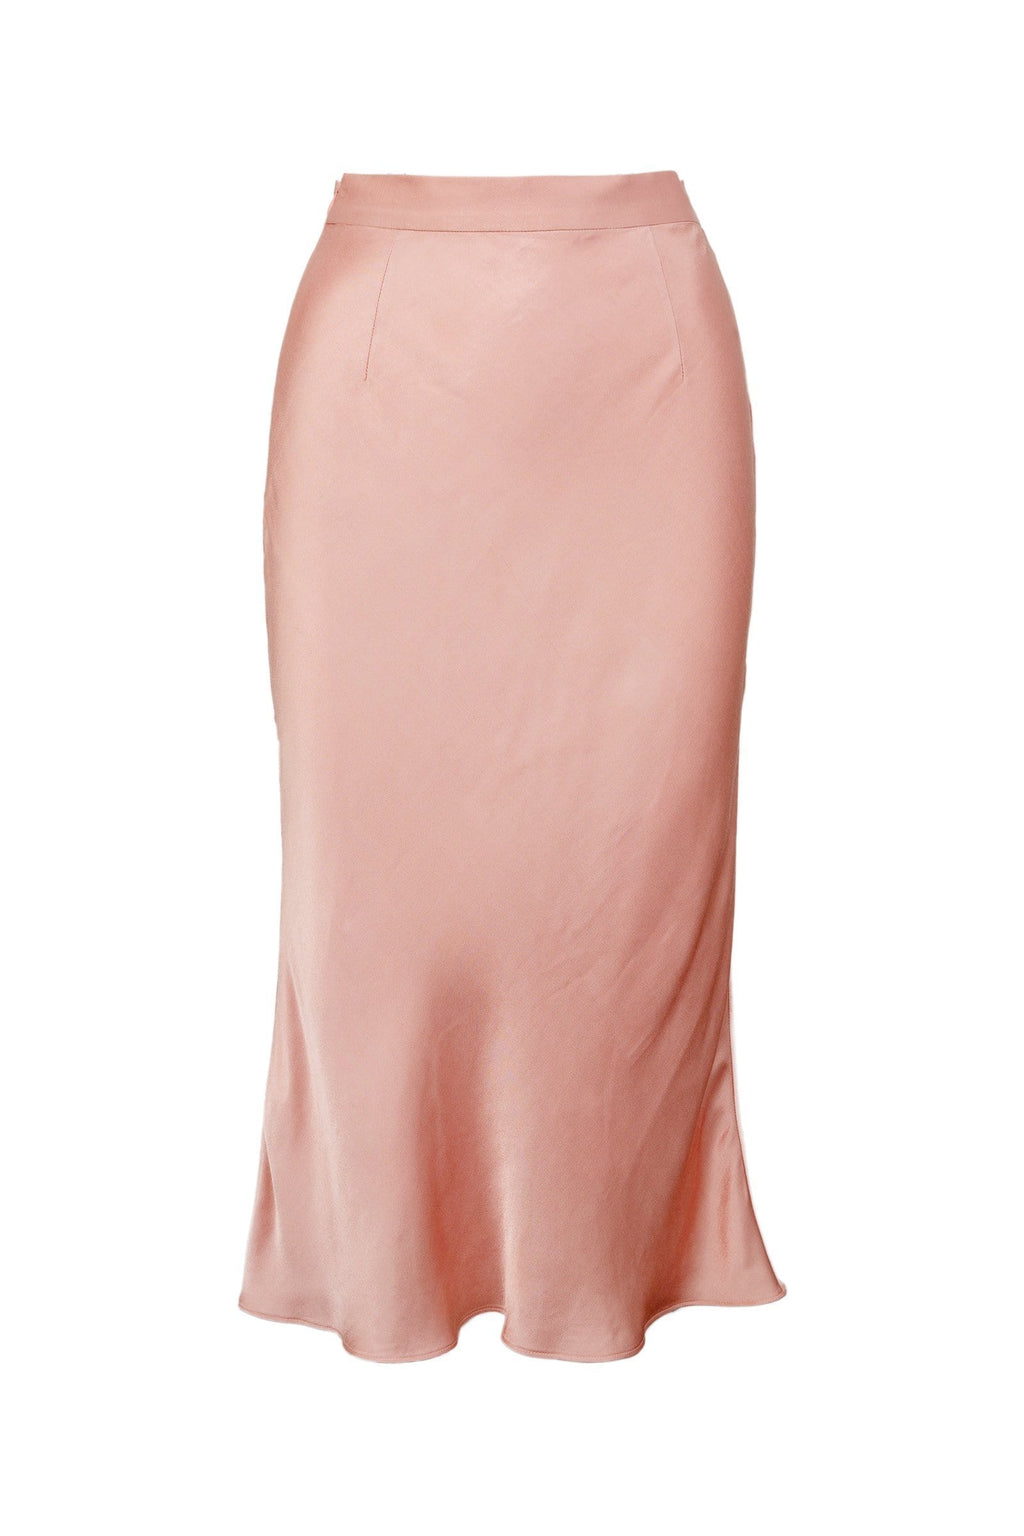 Peachy Pearl Skirt by J.ING LA women's fashion clothing